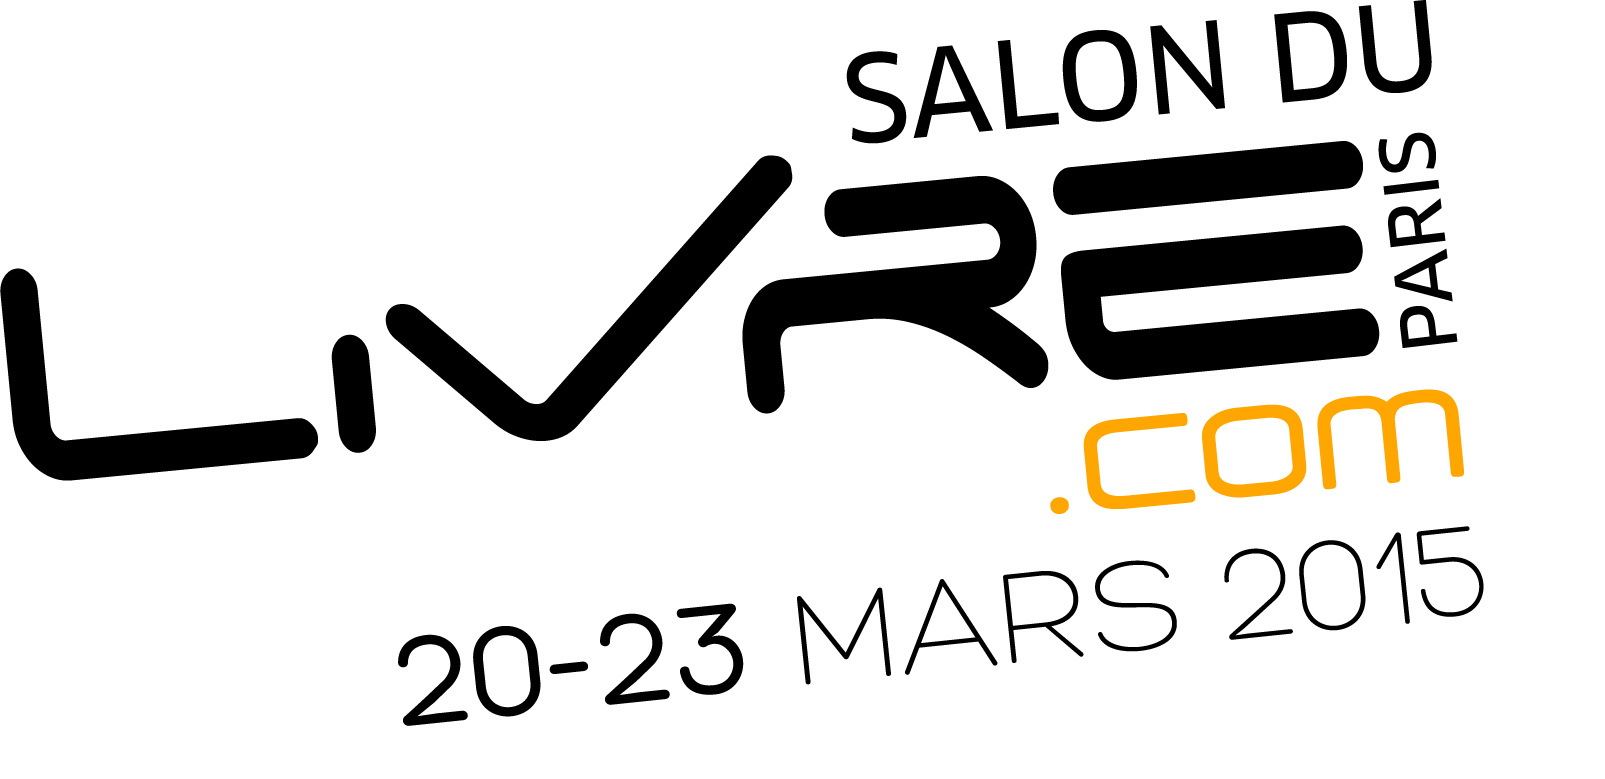 salon du livre 2015 chickon